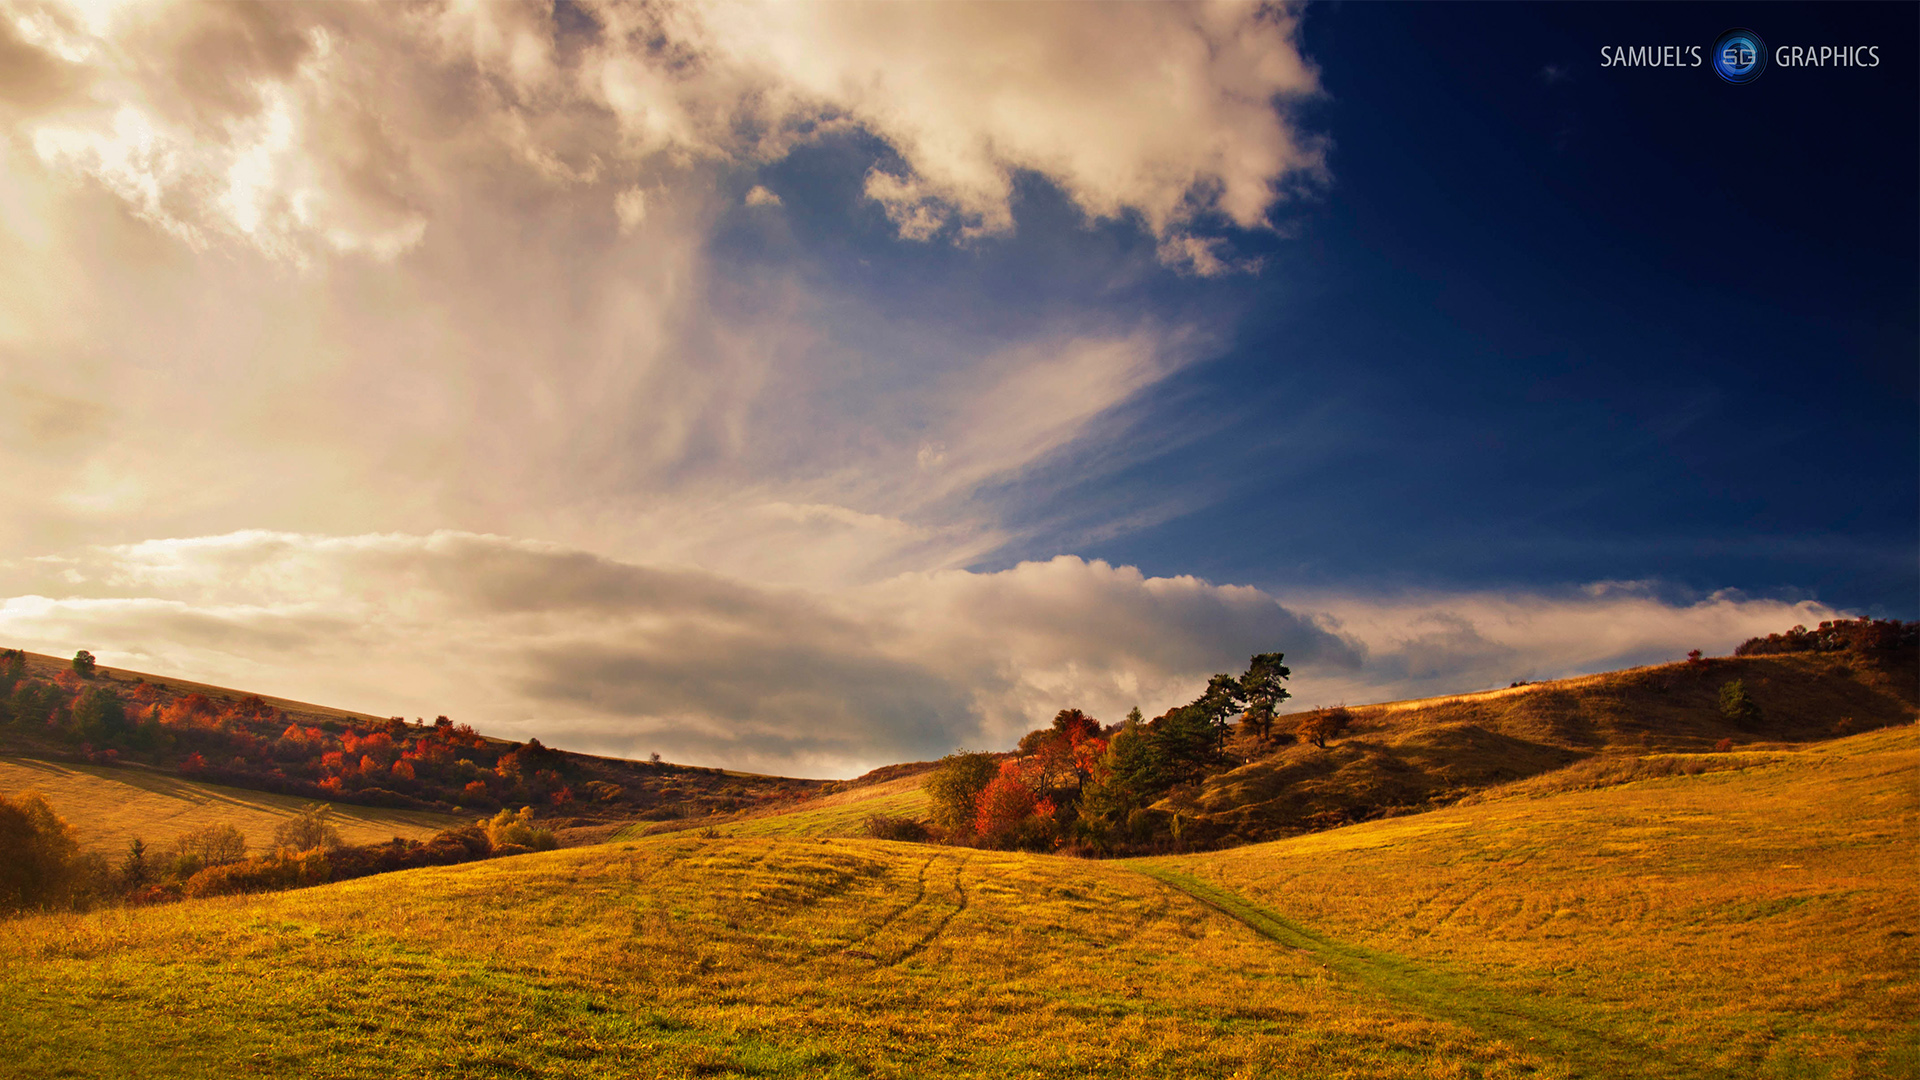 meadow fall landscape hd wallpaper by samuels graphics on